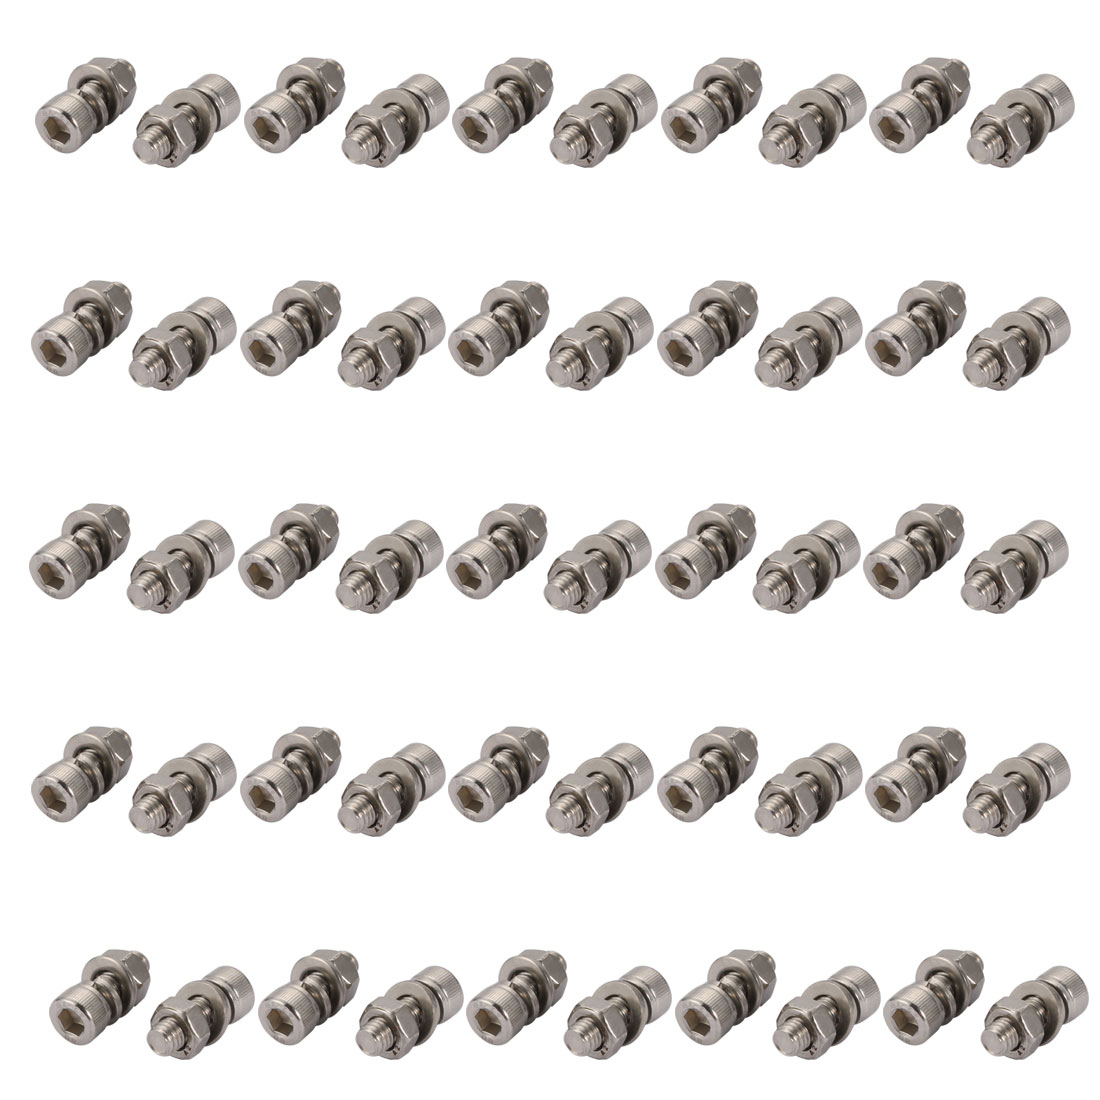 50Pcs M6x20mm 304 Stainless Steel Knurled Hex Socket Head Bolt Nut Set w Washer